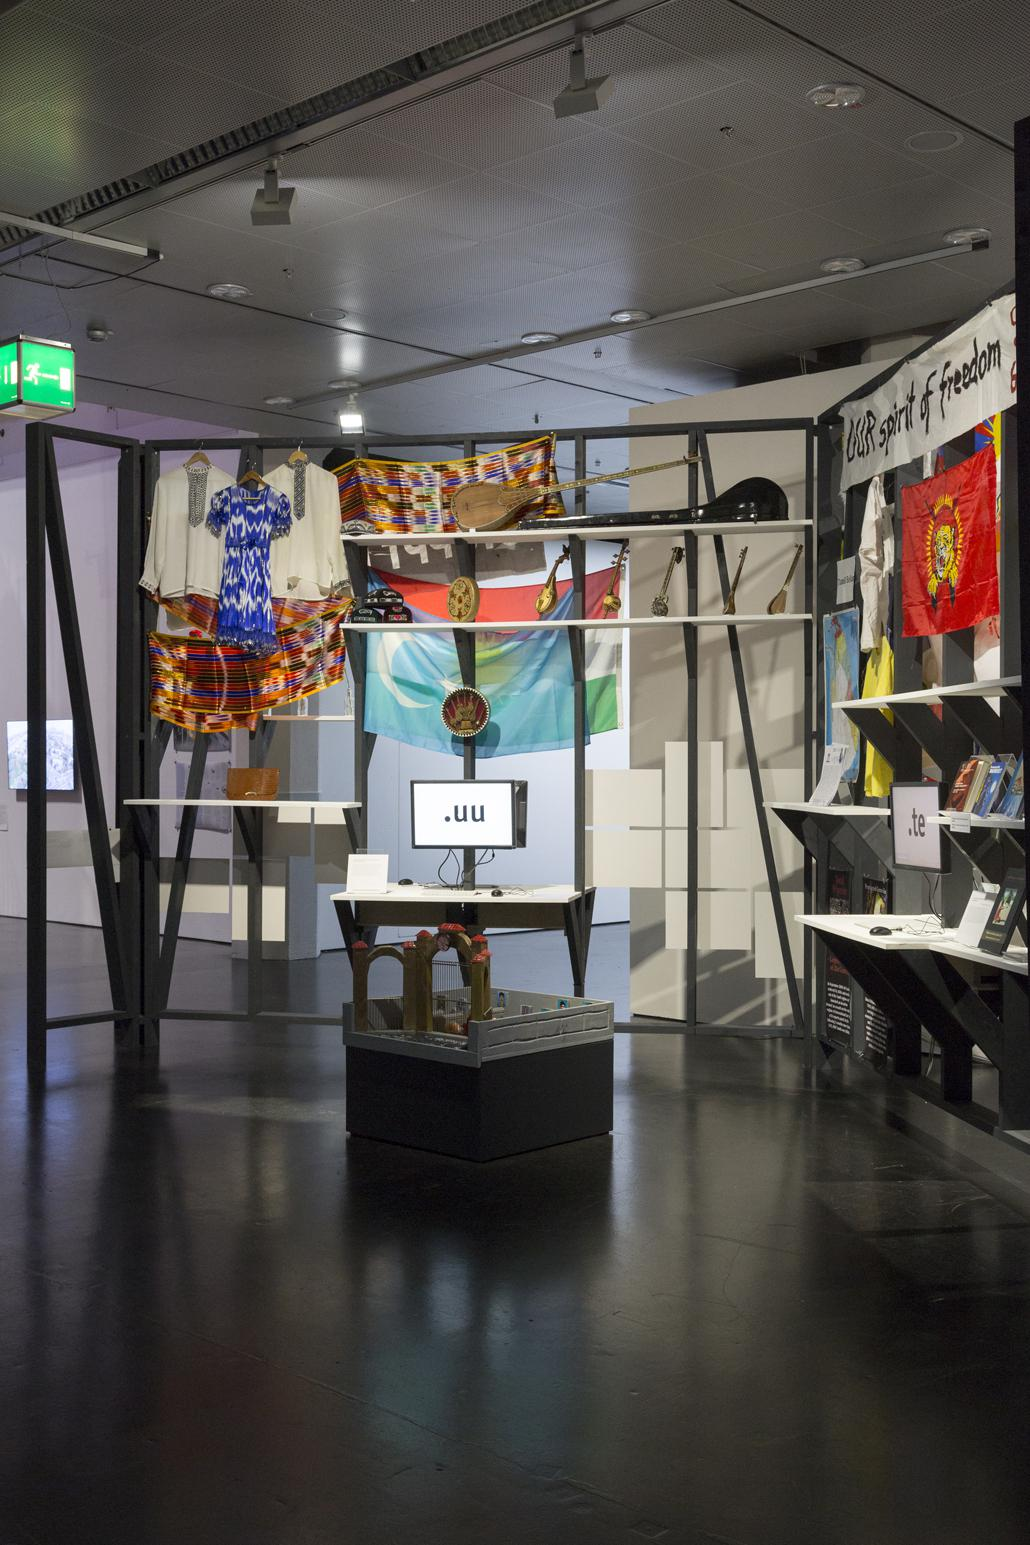 Clothes, instruments and books are hanging and standing at a wall